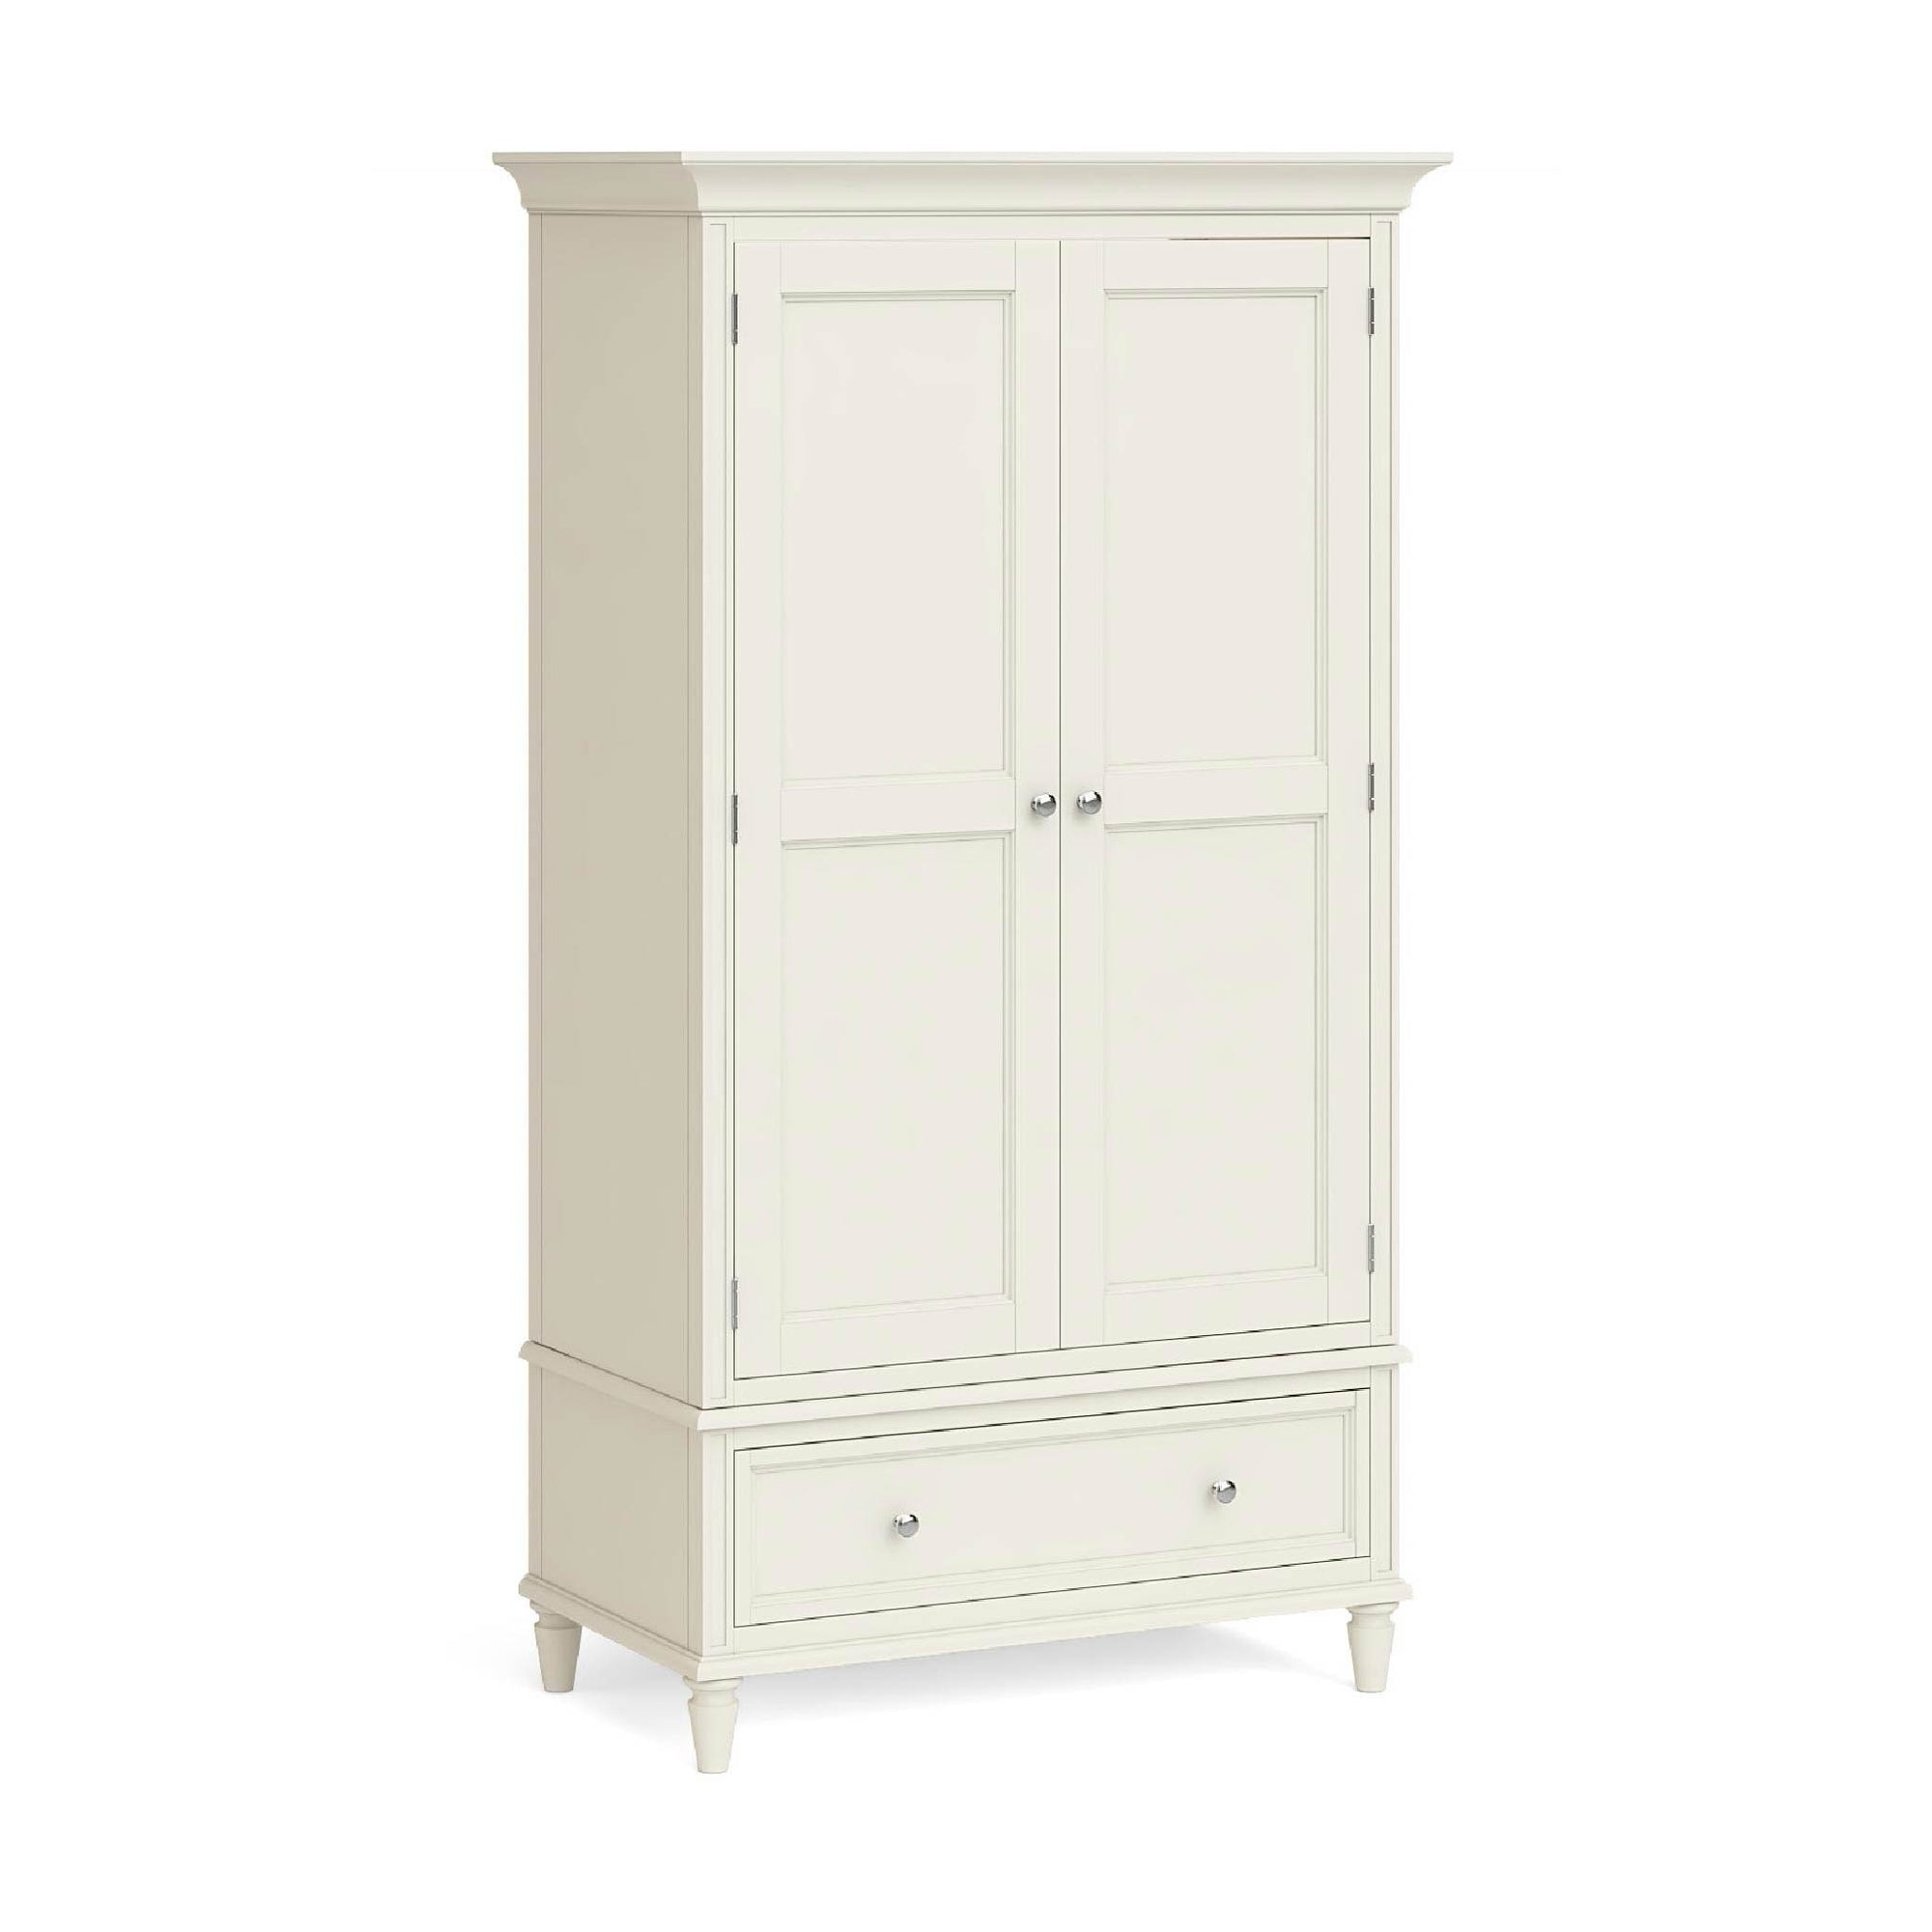 Mulsanne Cream Double Wardrobe with Drawer by Roseland Furniture